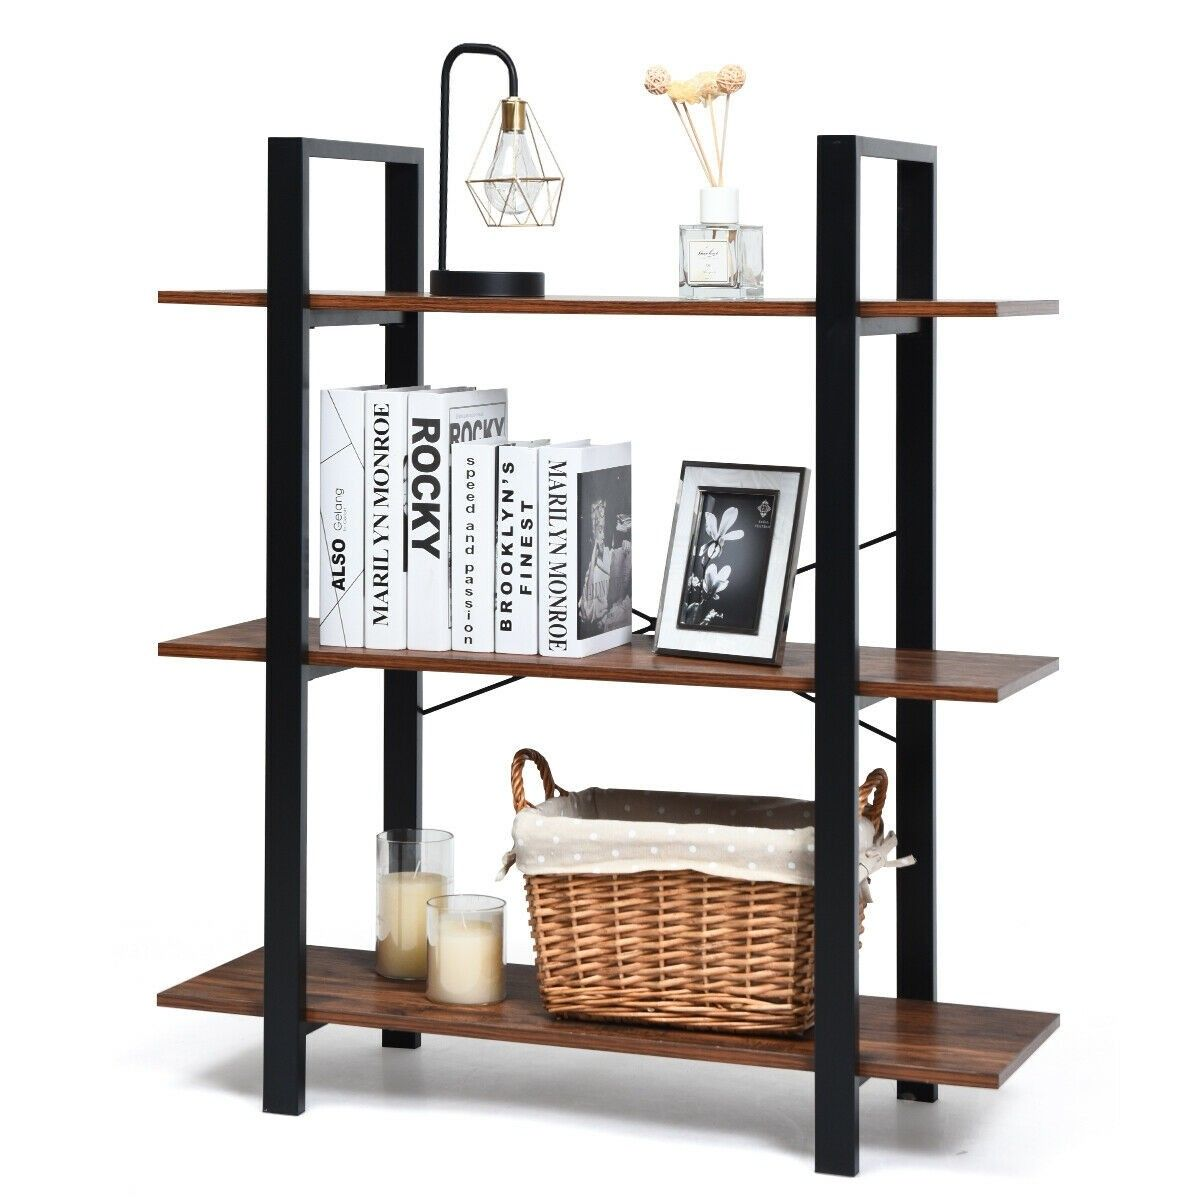 3 Tiers Bookshelf Industrial Bookcases Metal Frame Shelf Stand 79 95 Free Shipping It Is Made Of P2 Grade Particle Board Frame Shelf Metal Bookshelf Shelves